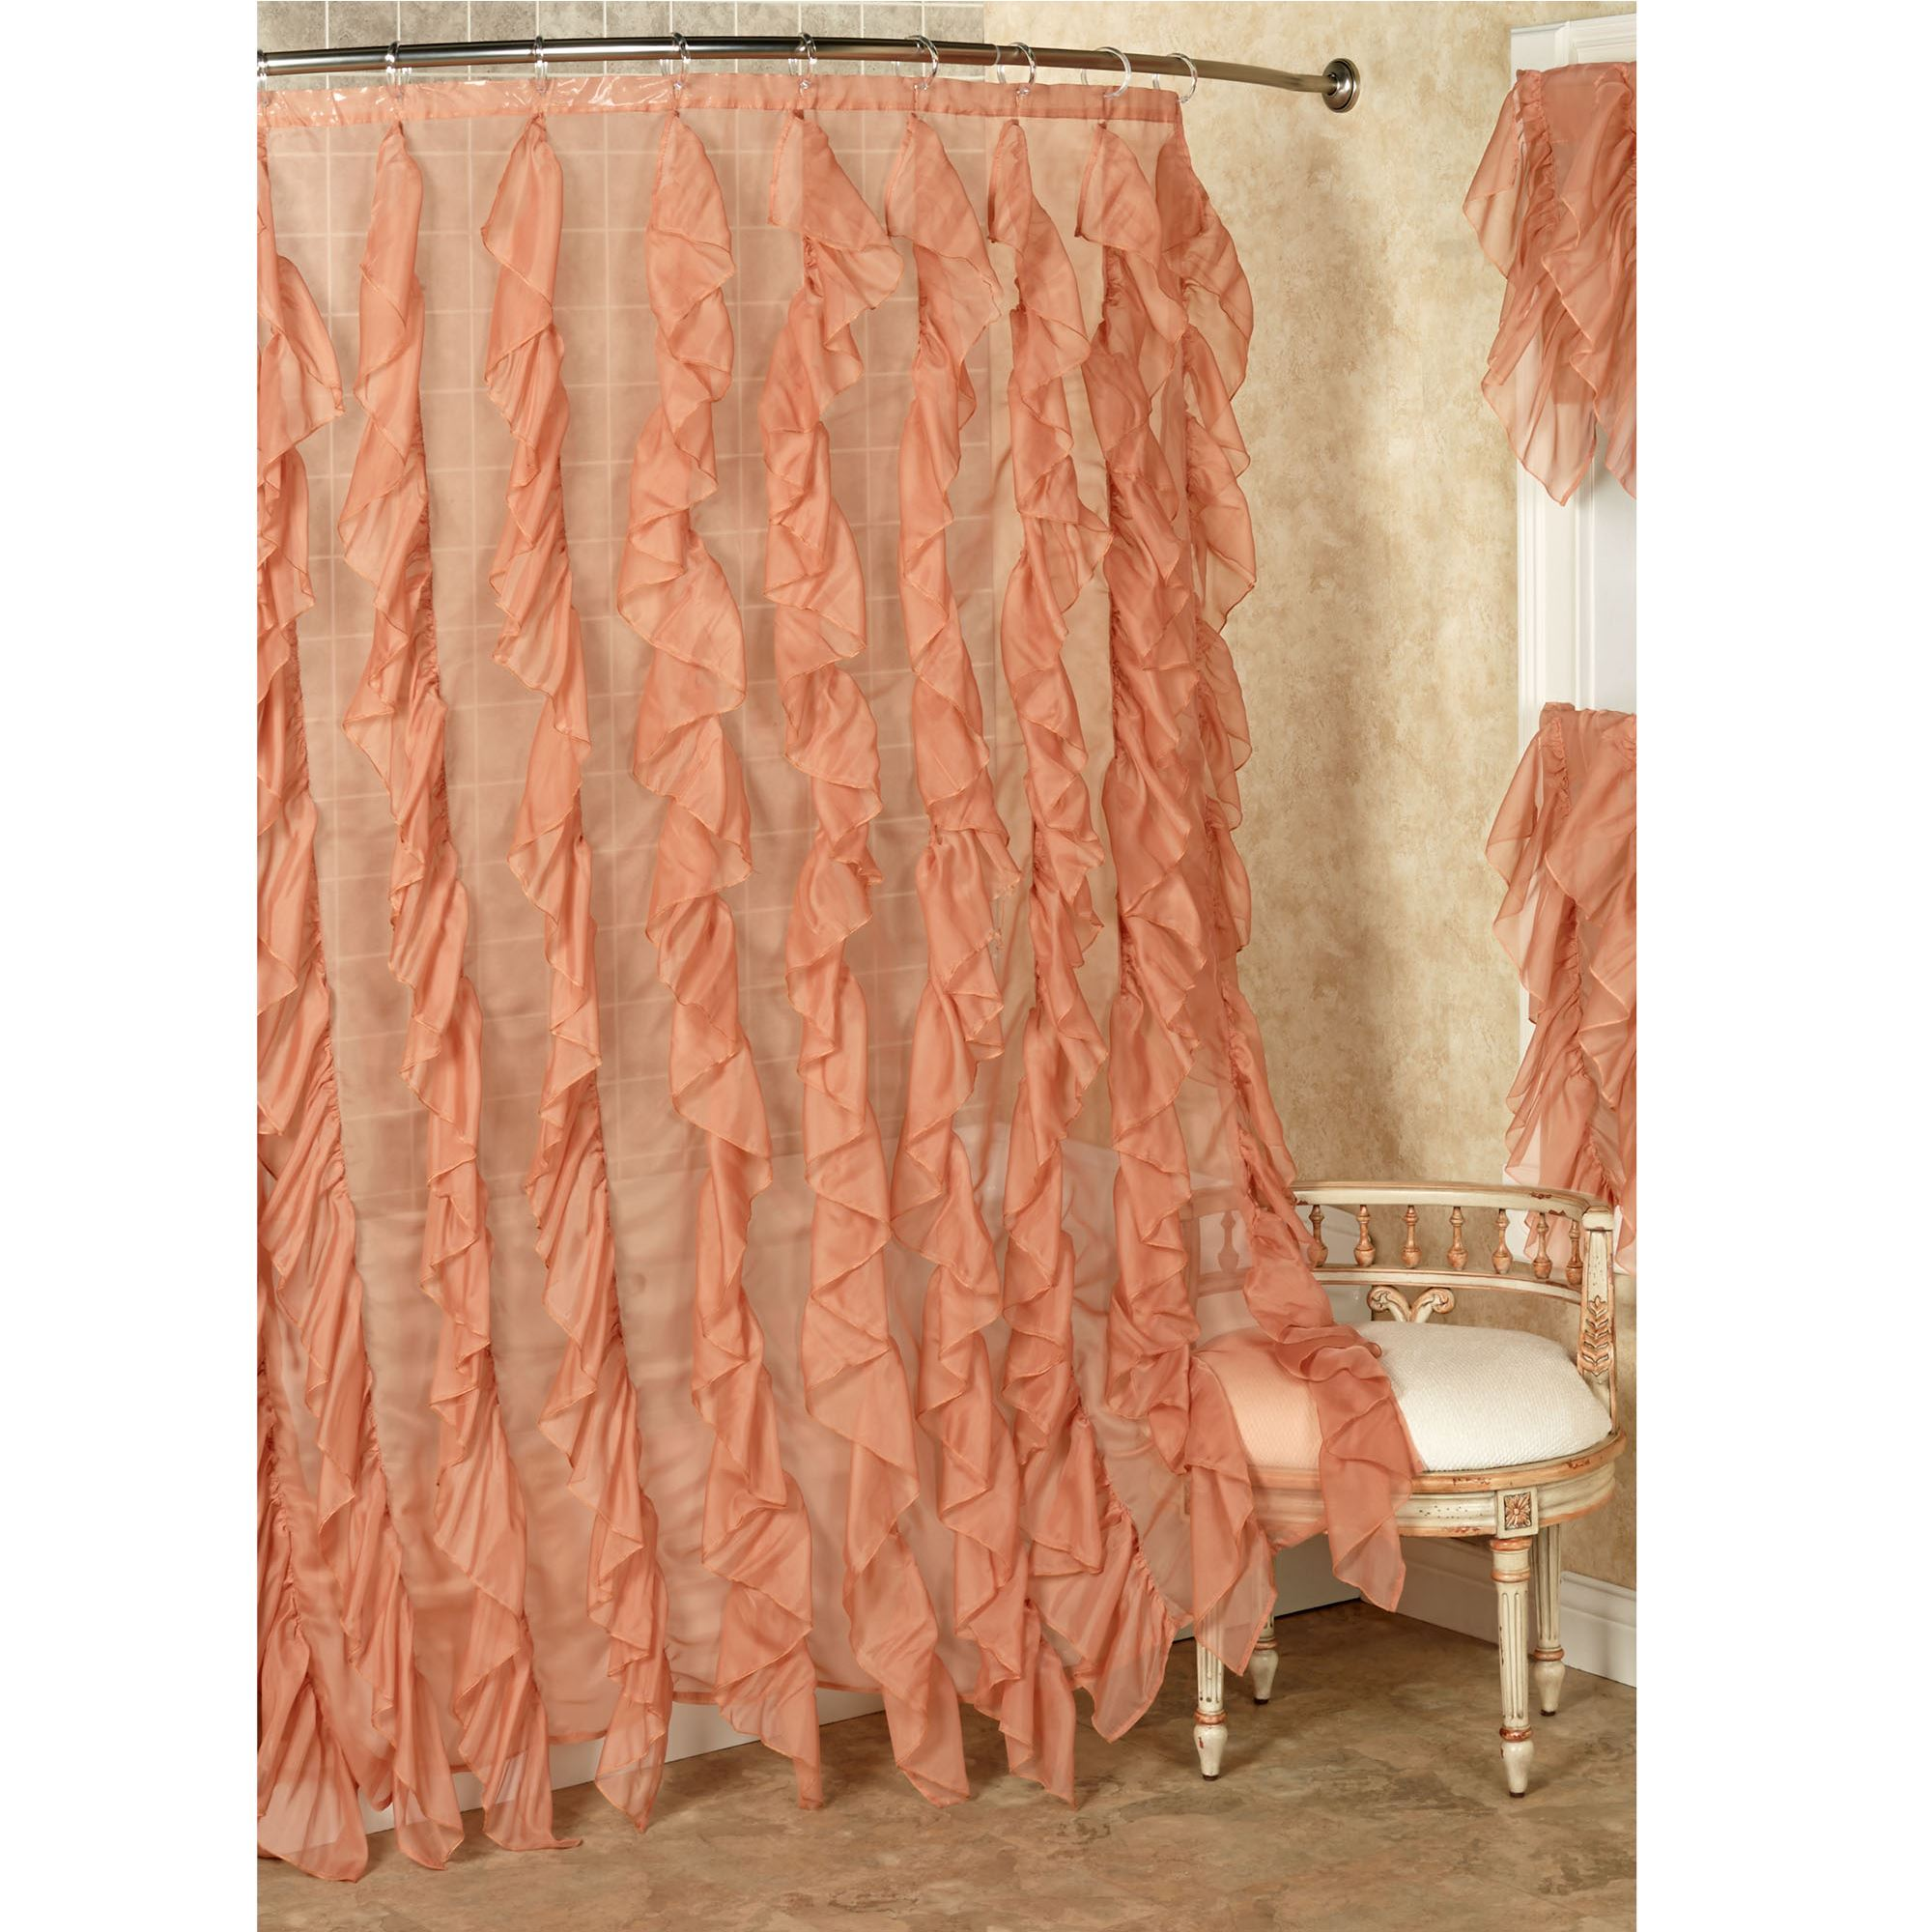 You Might Also Consider Fabric Shower Curtain